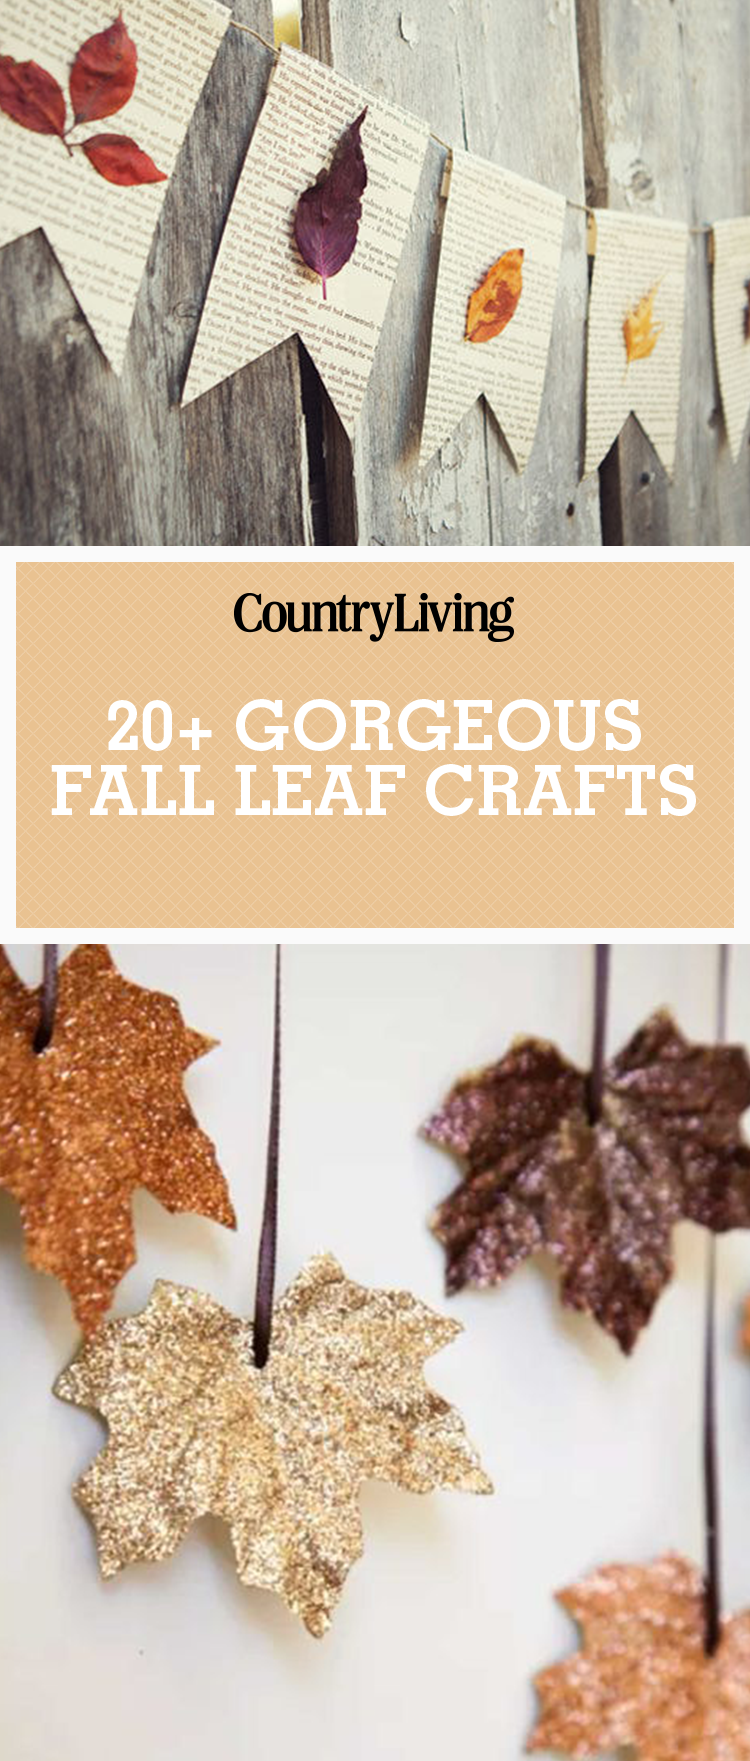 30 fall leaf crafts diy decorating projects with leaves for Fall diy crafts pinterest